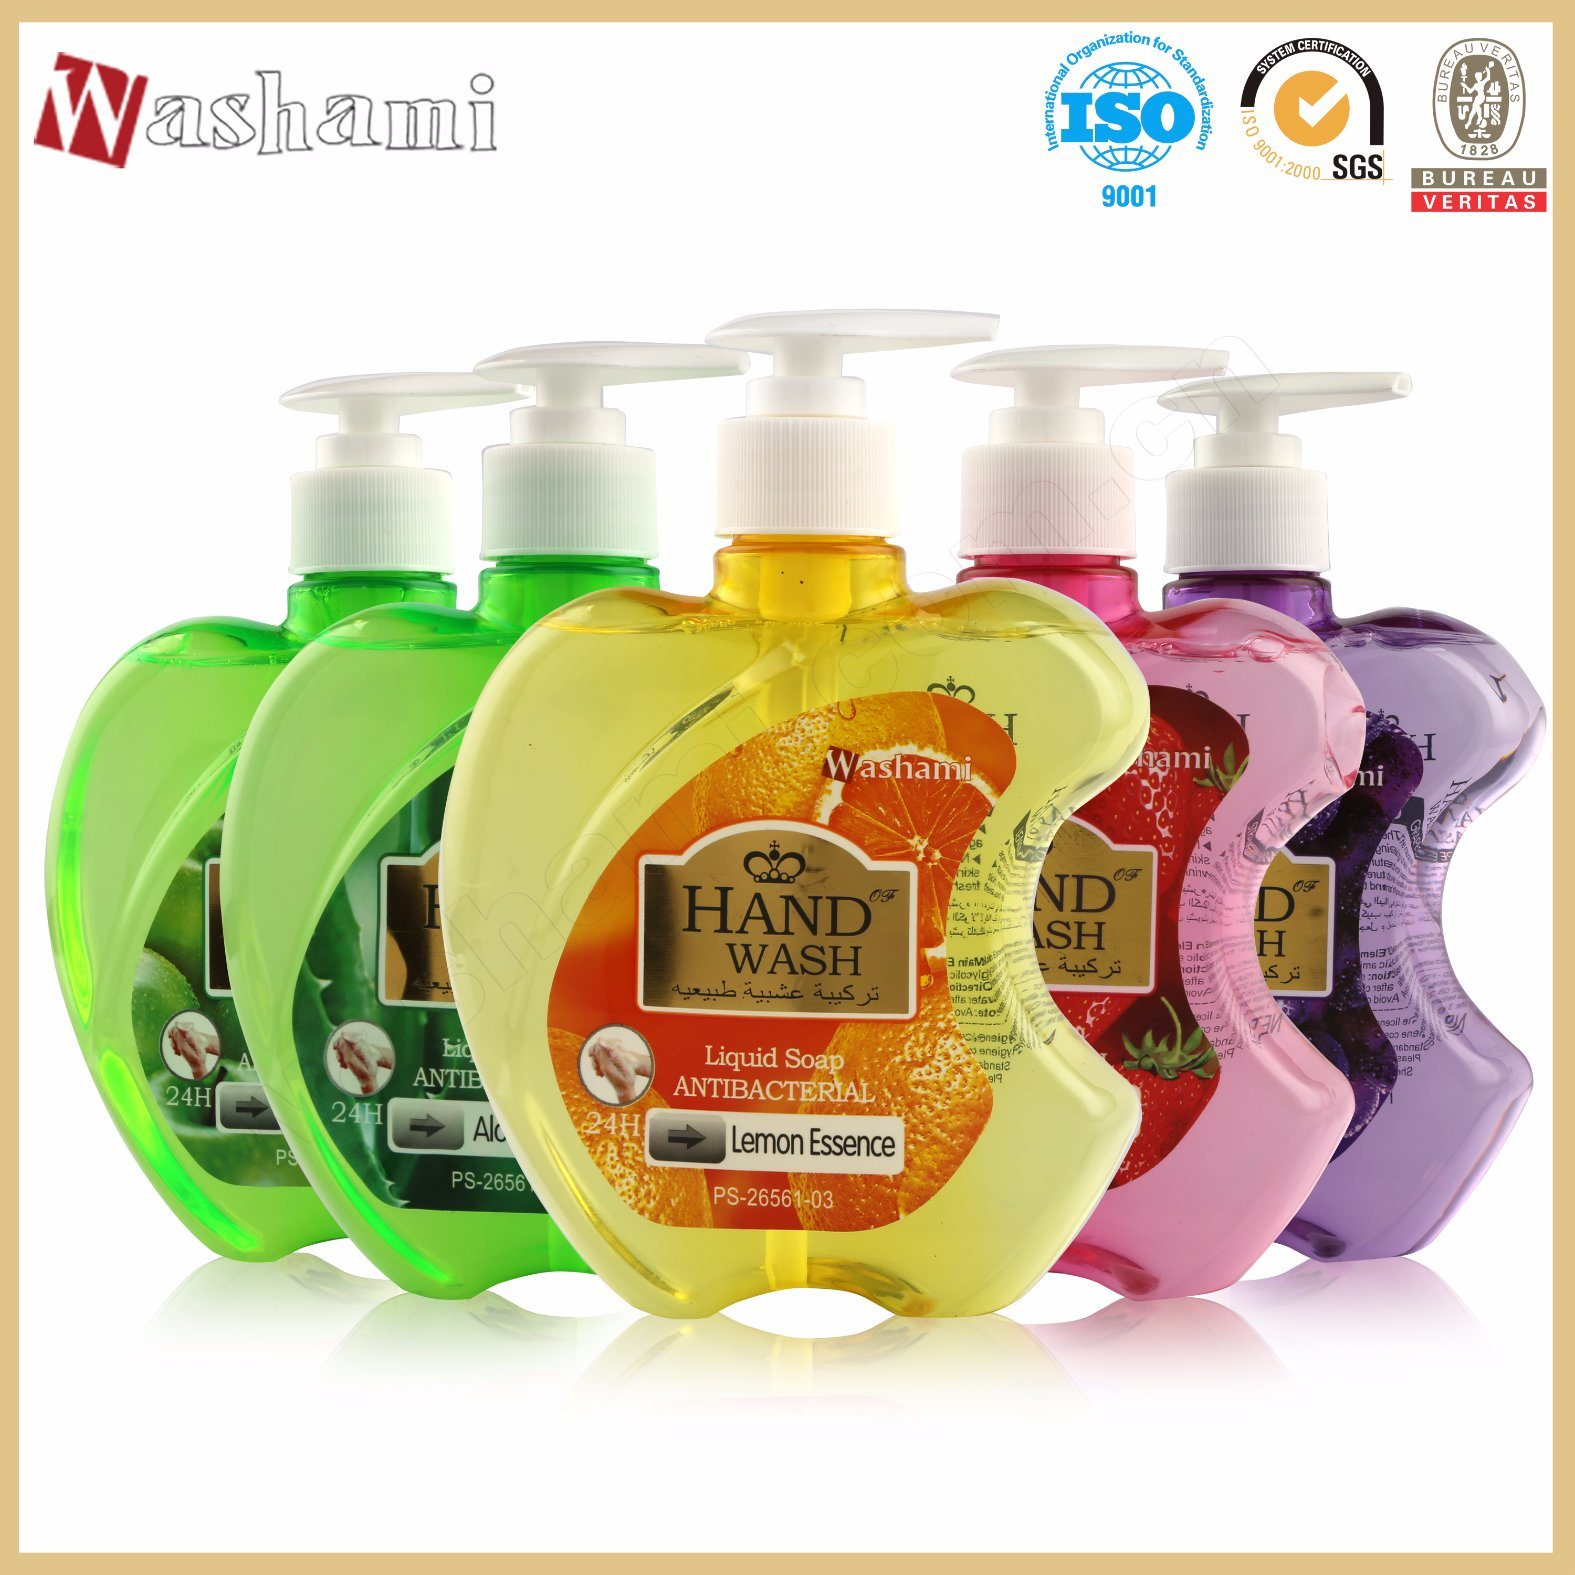 Washami 24 Hour Care Antibacterial Liquid Soap Hand Wash